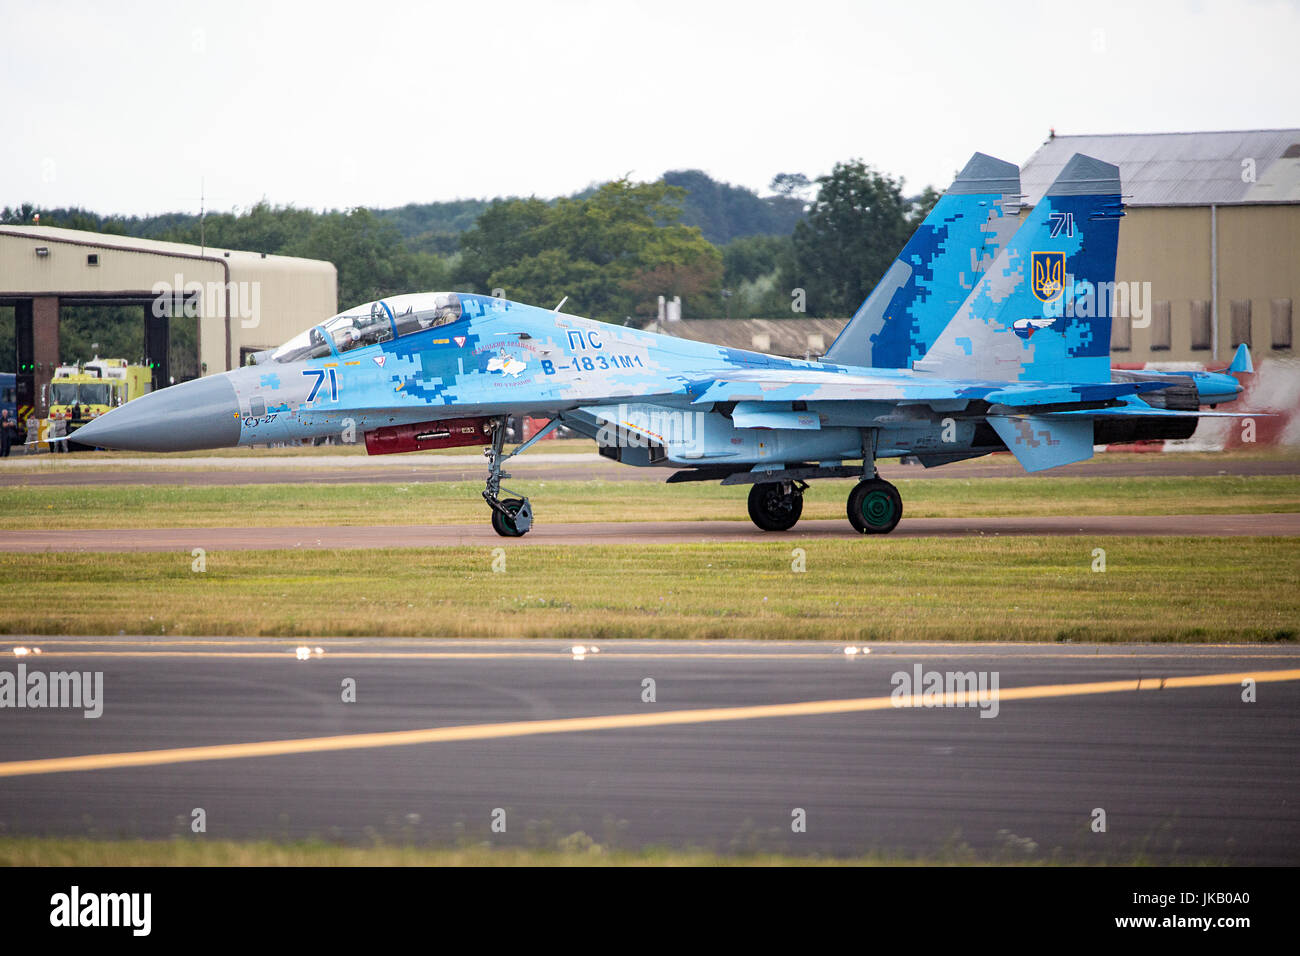 Su-27 Flanker from the Ukrainian Air Force seen at the Royal International Air Tattoo 2017 - Stock Image